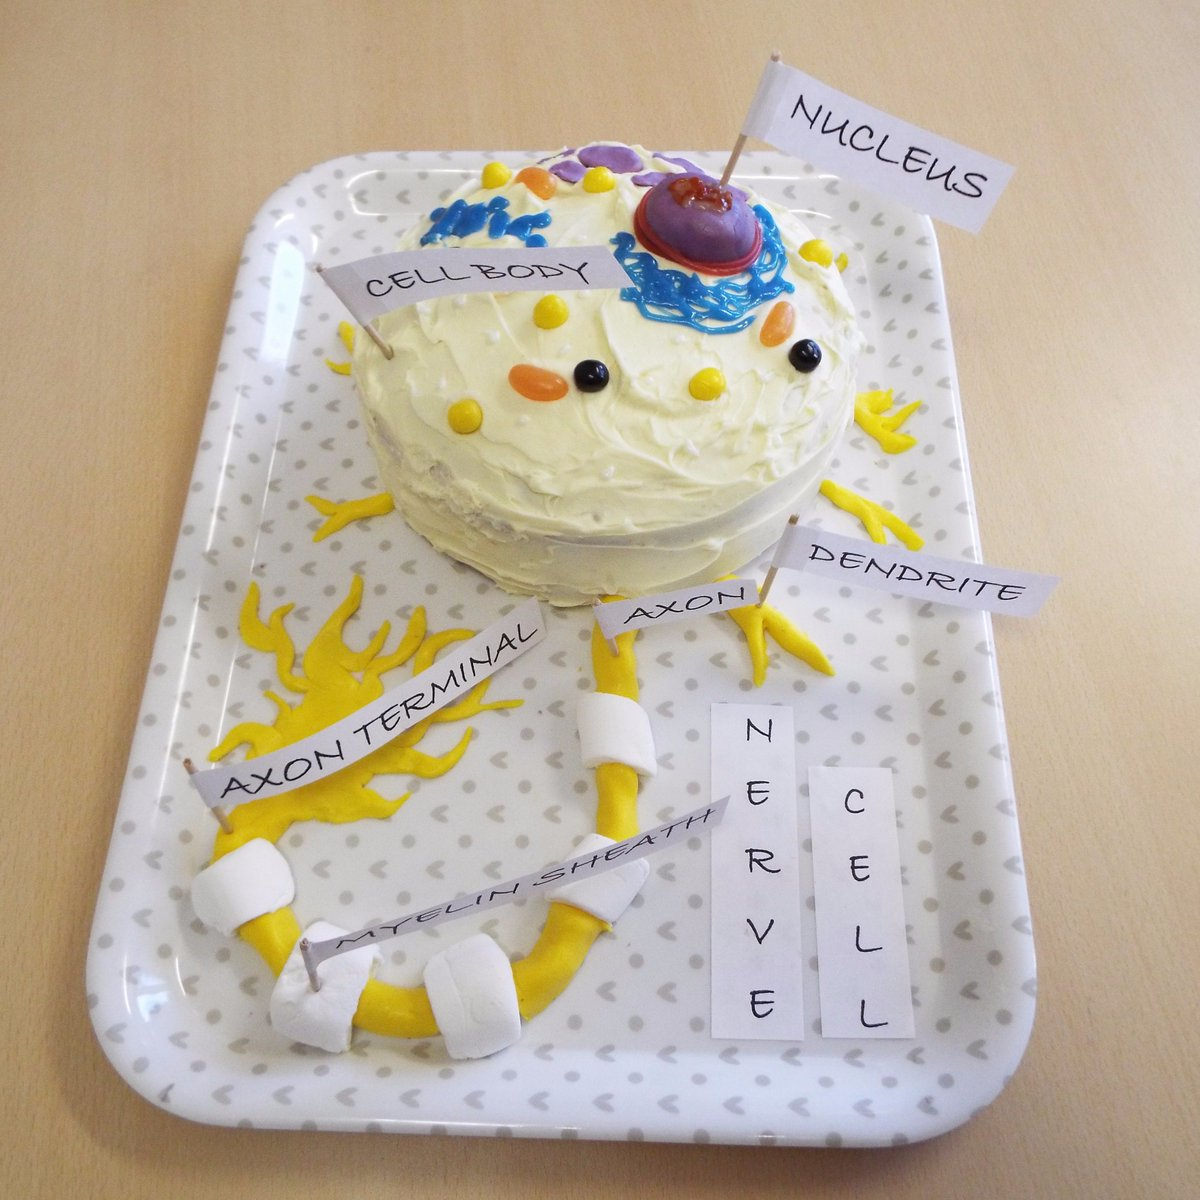 Amazing Cell Project Interframe Media Animal And Plant Diagram 3d Cells Rumney Marsh Academy Science St Thomas More Crewe On Twitter An Nerve Cake Has